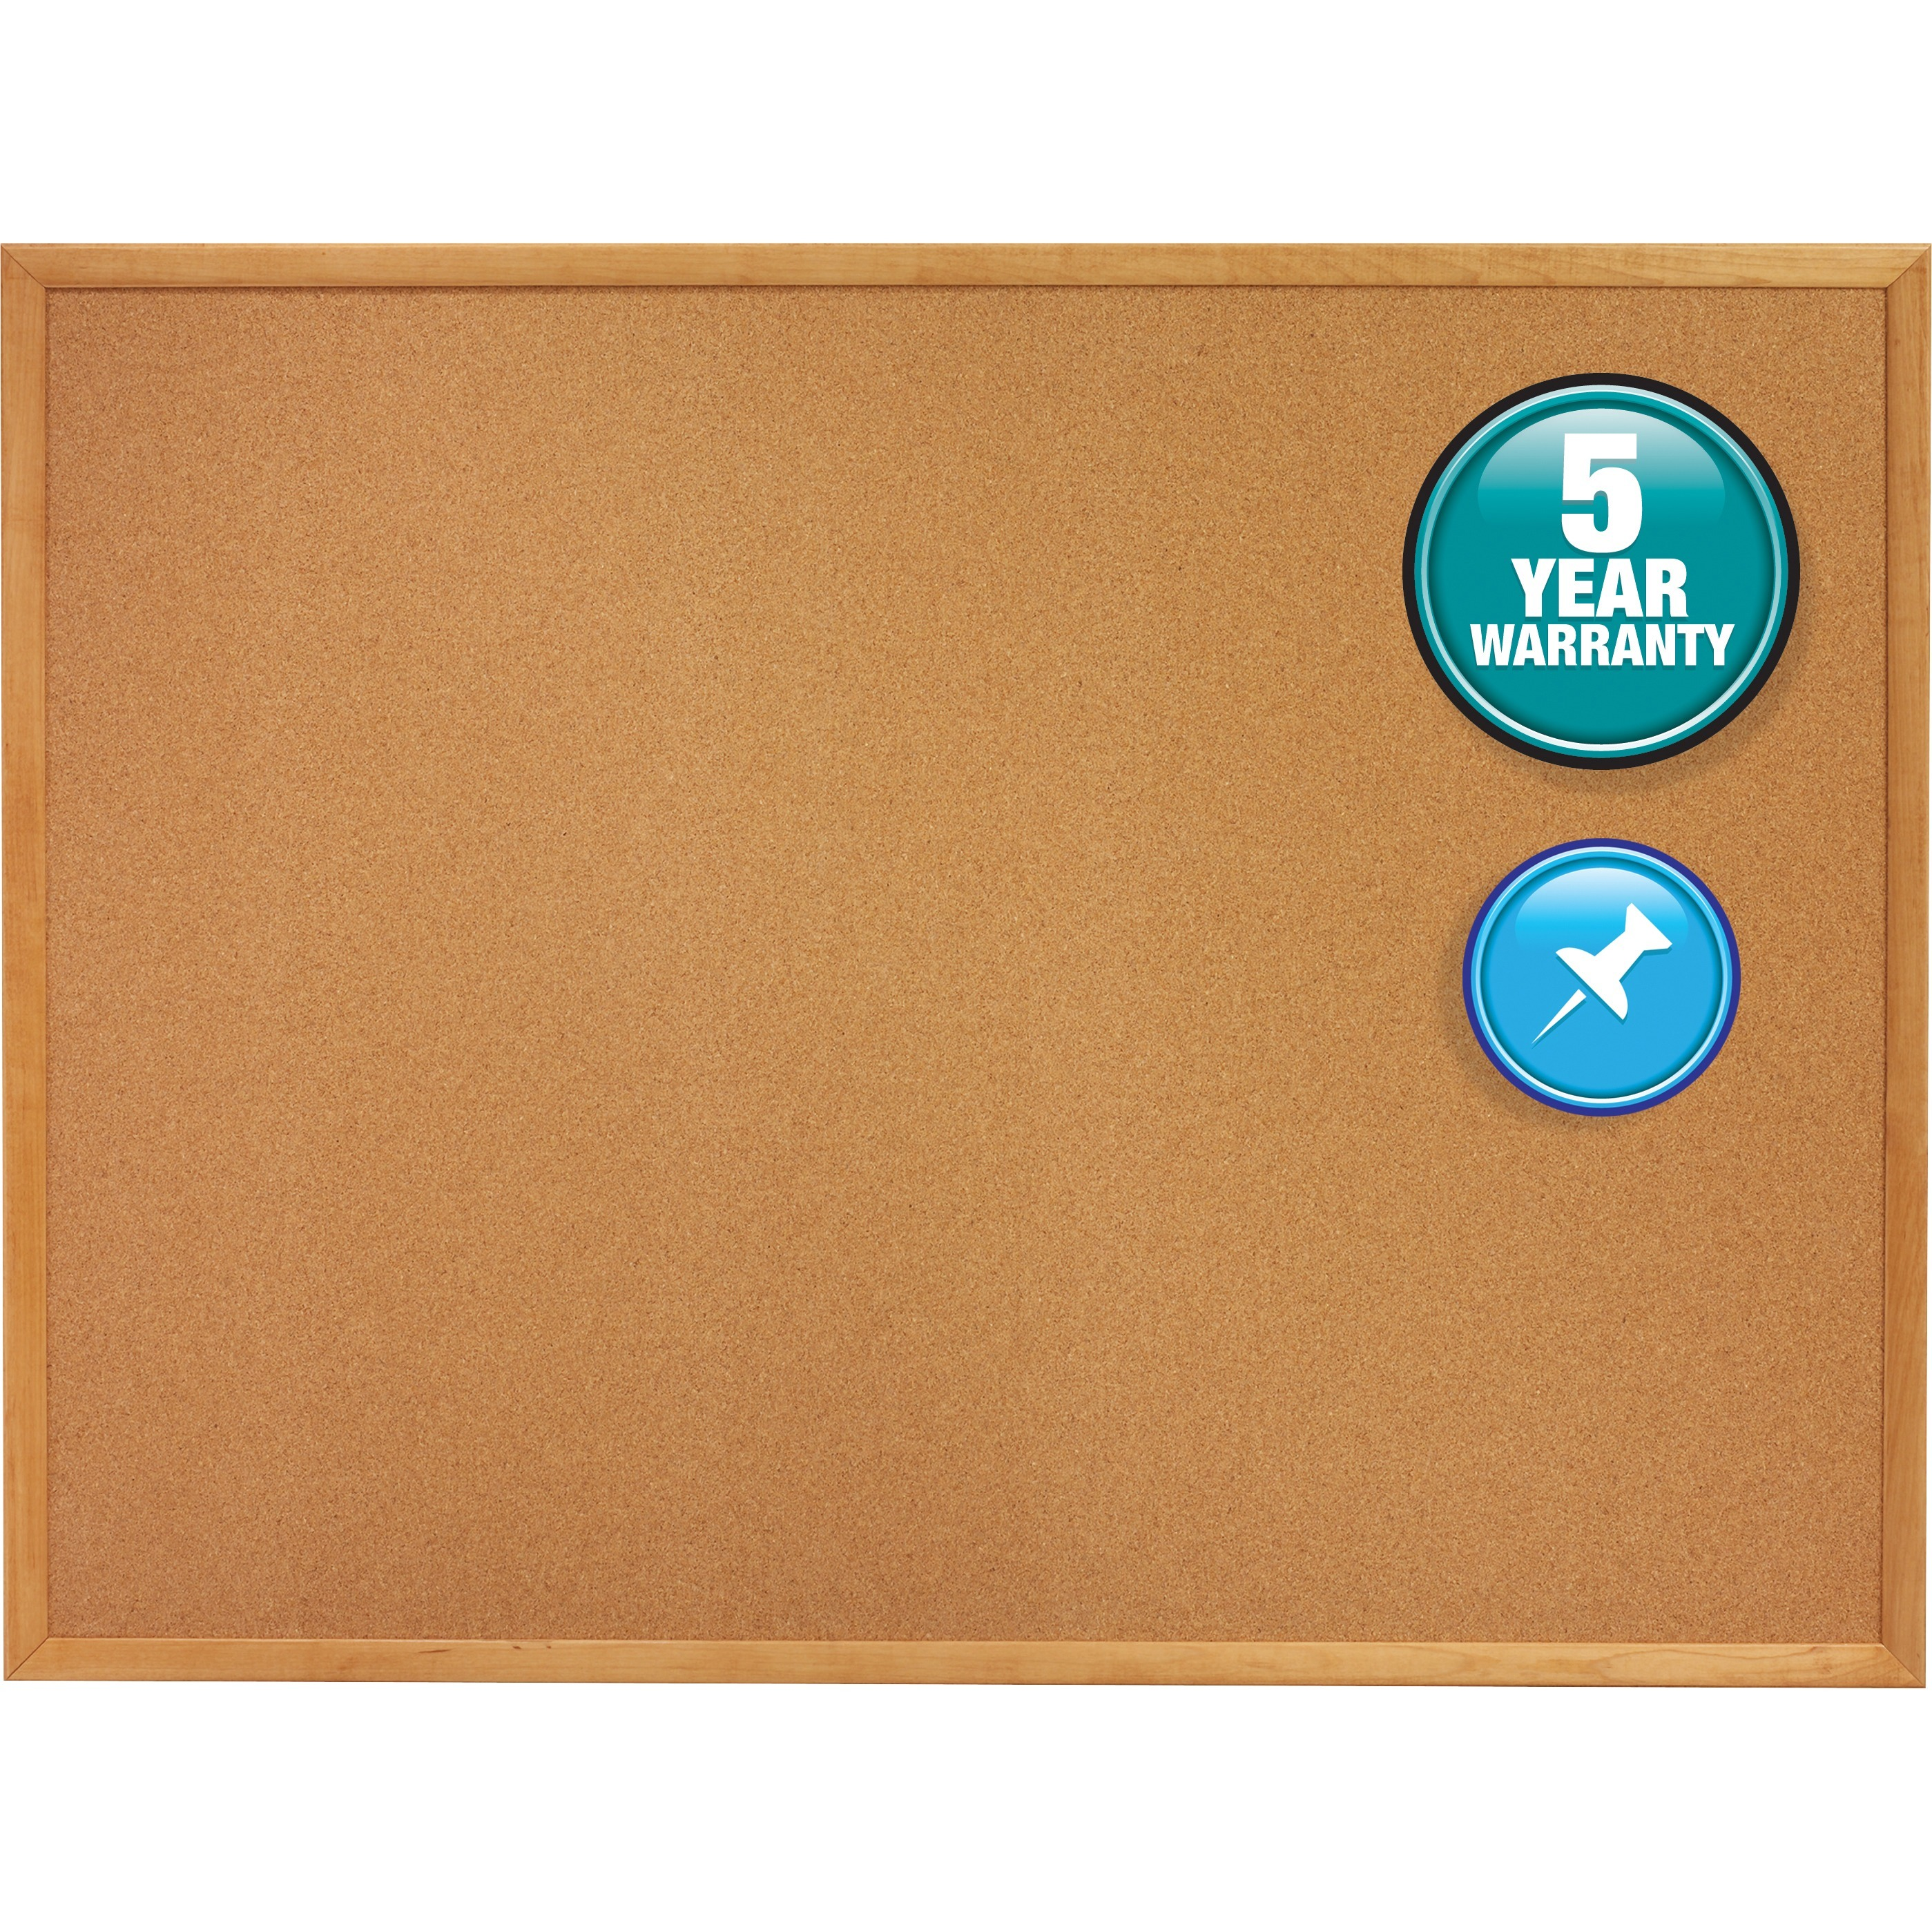 Quartet Classic Series Cork Bulletin Board, 48 x 36, Oak Finish Frame